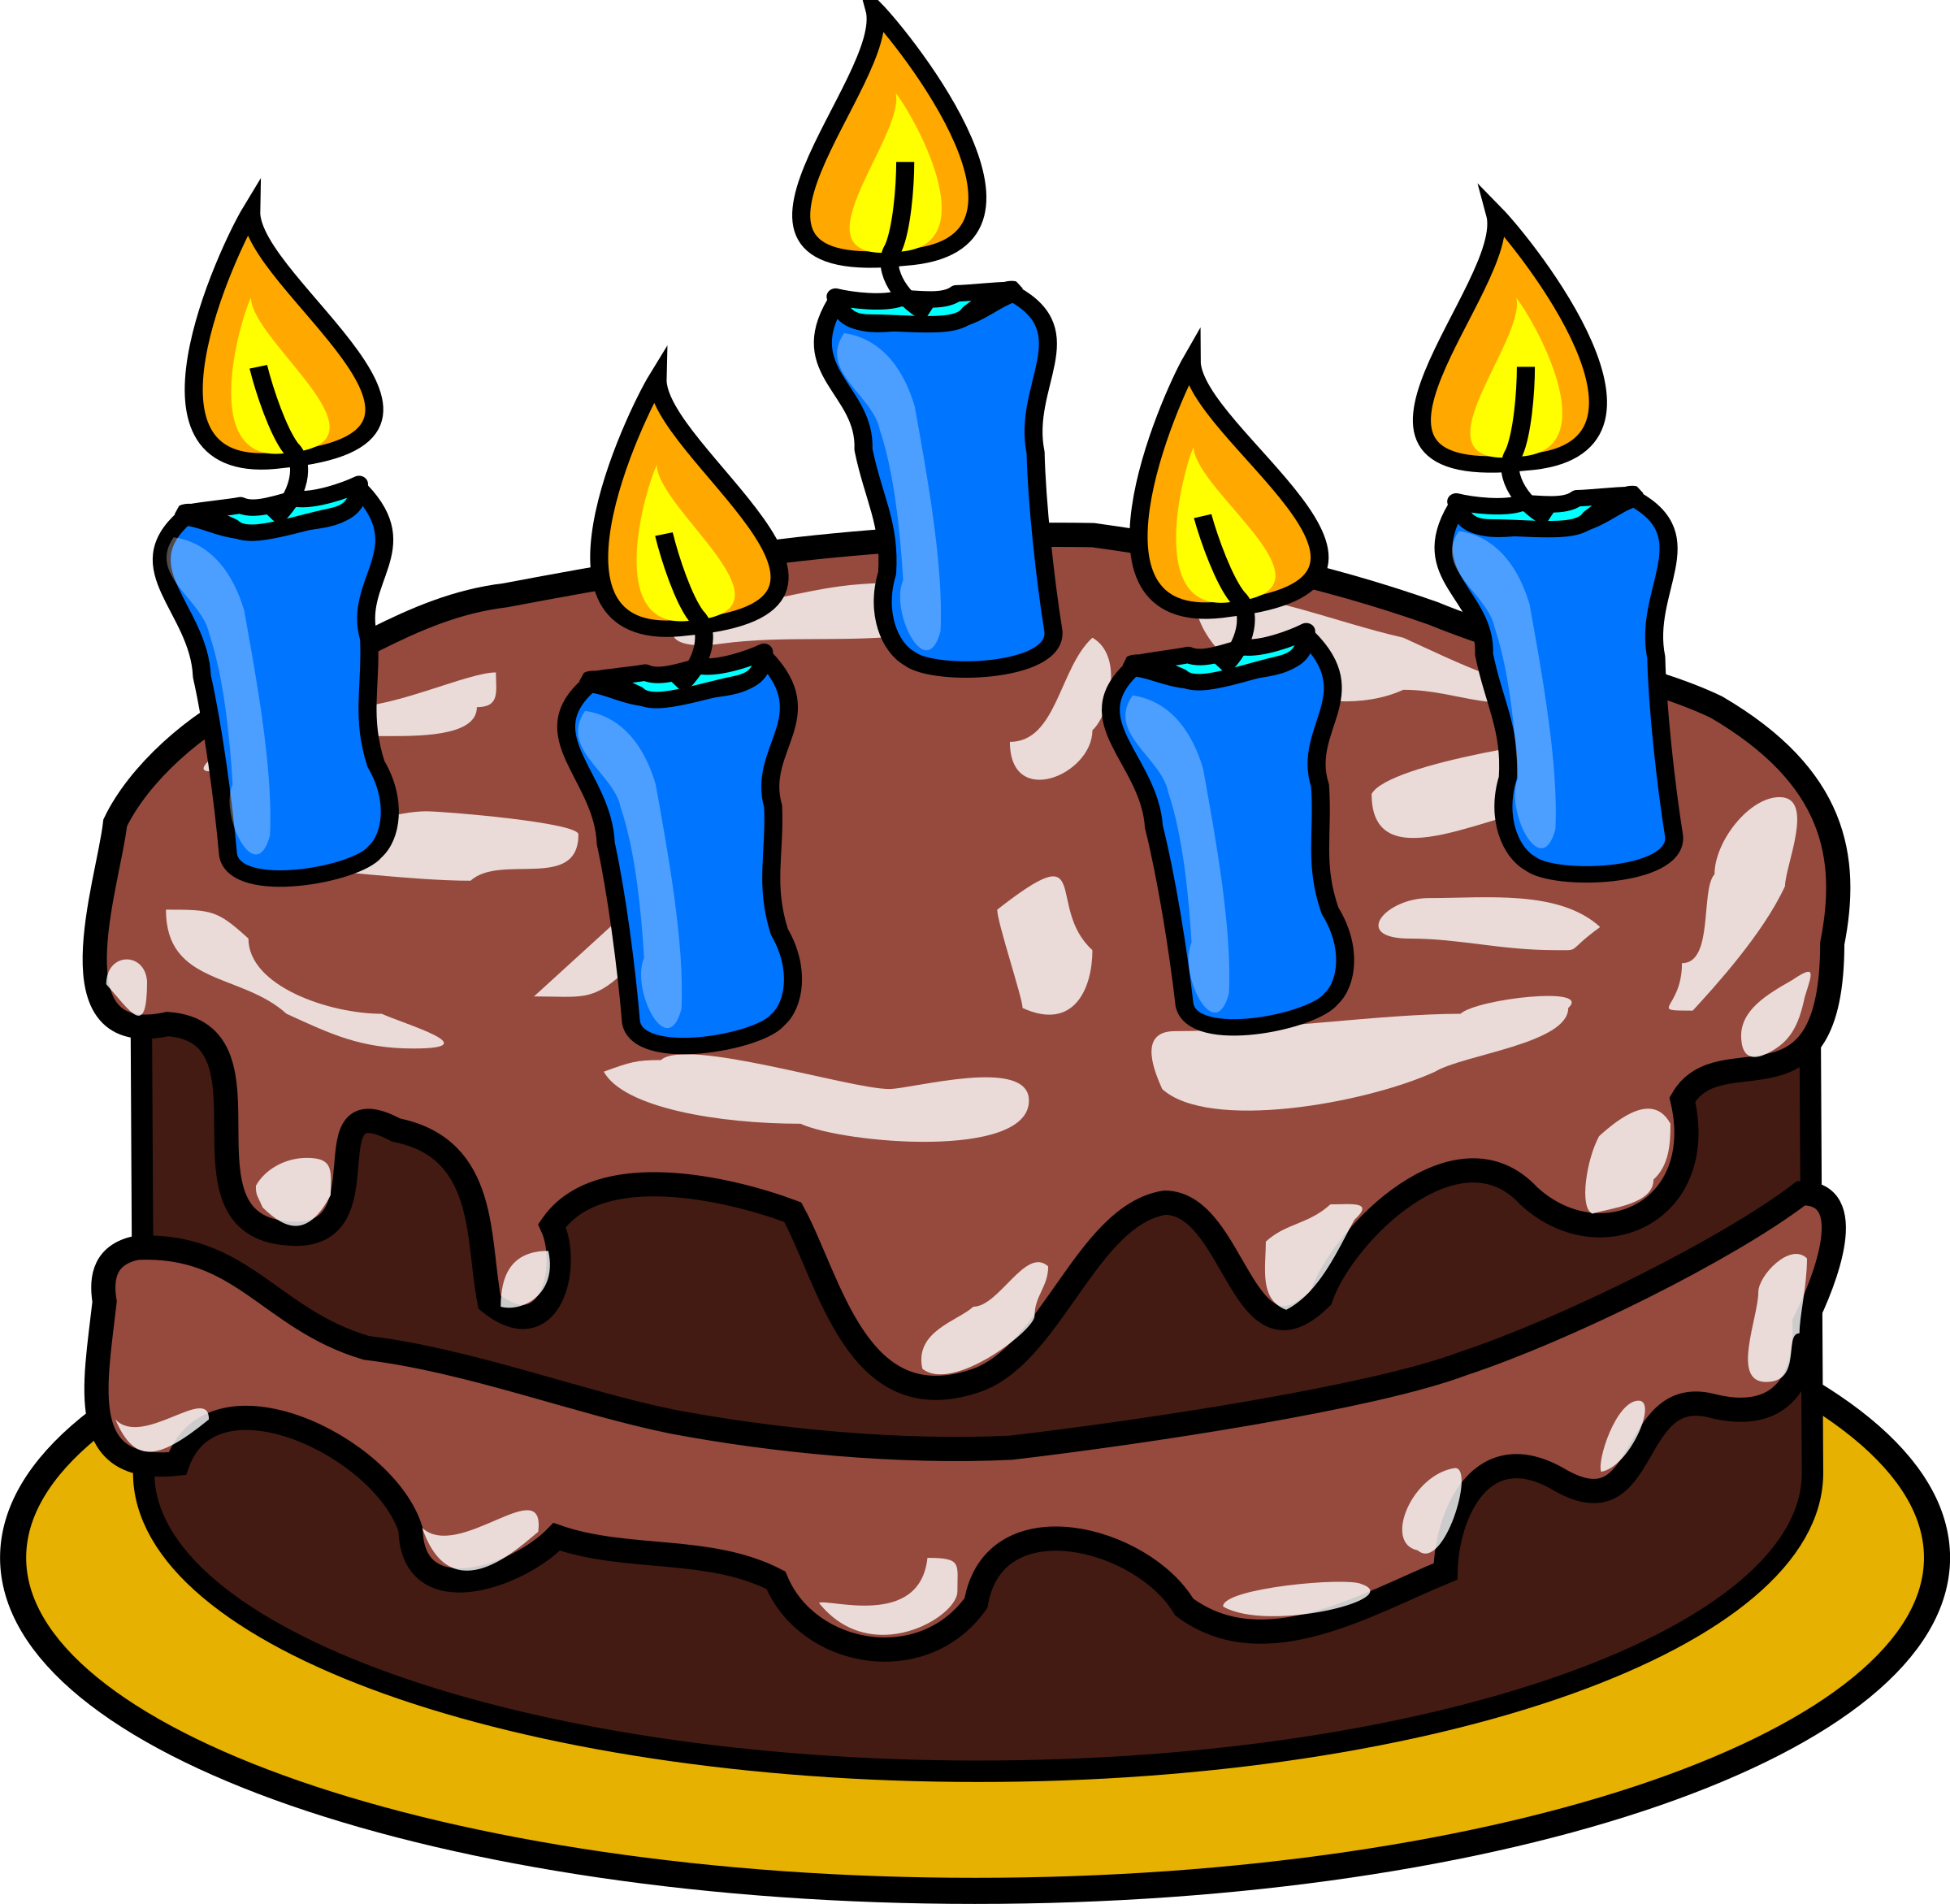 Chocolate birthday cake big. Baked goods clipart cartoon